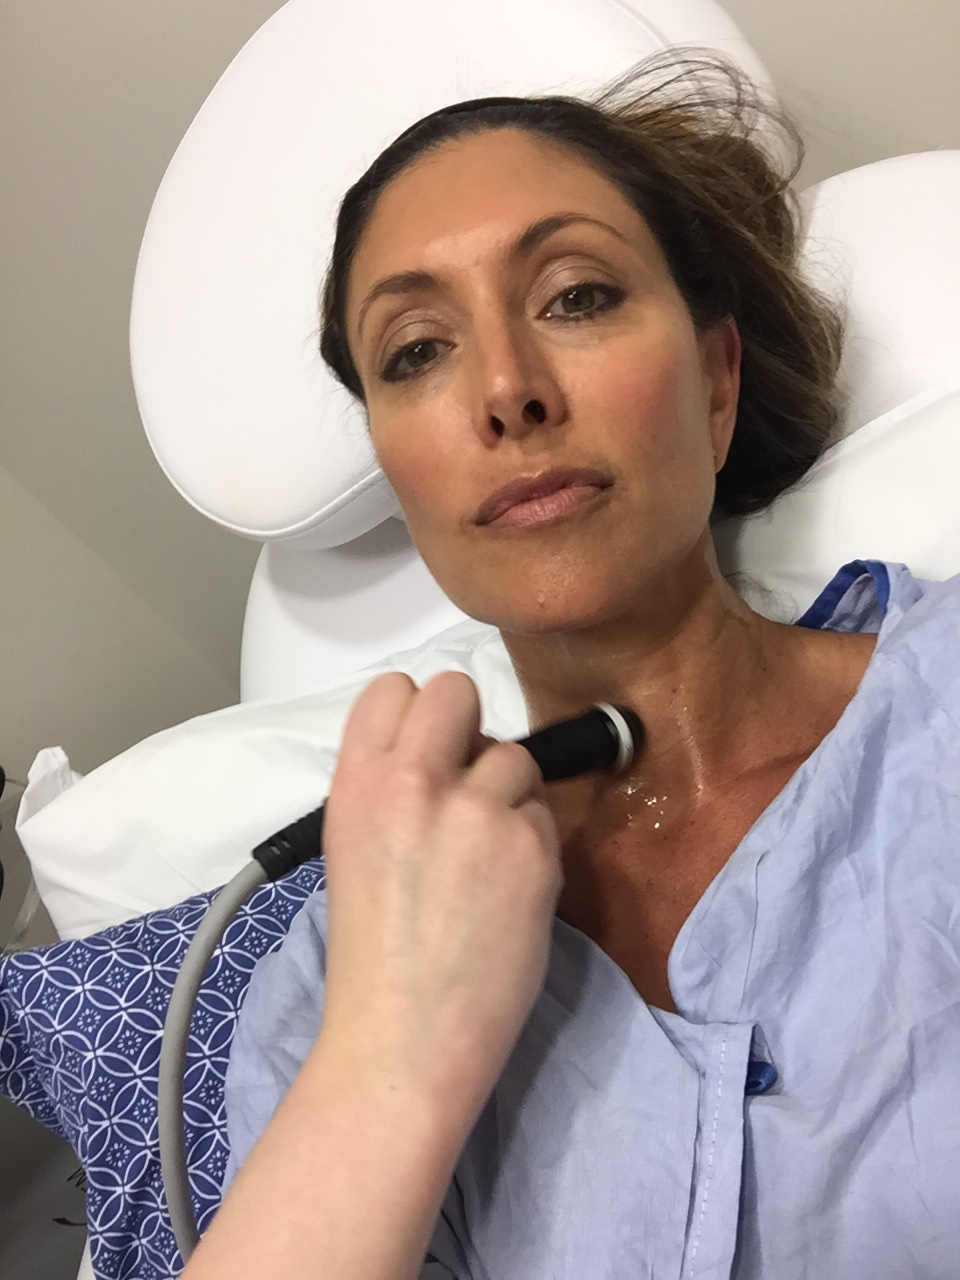 I had instant results with the ThermiSmooth treatment on my neck and around my eyes. And, it was painless!